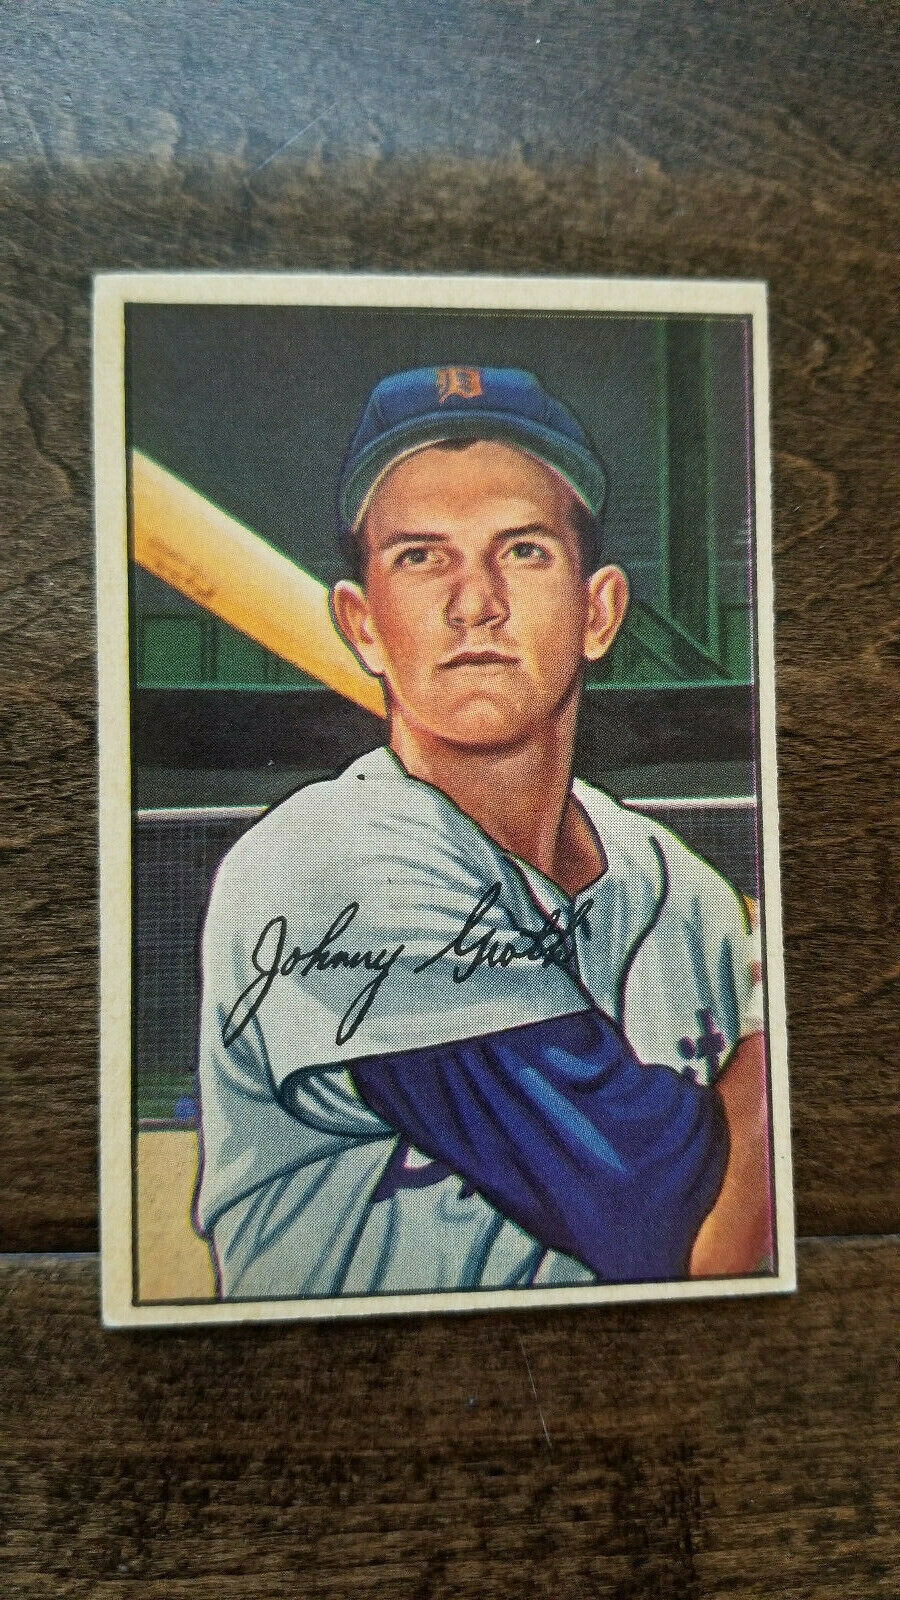 Primary image for 1952 BOWMAN BASEBALL CARD JOHNNY GROTH DETROIT TIGERS BROWNS SENATORS A'S # 67